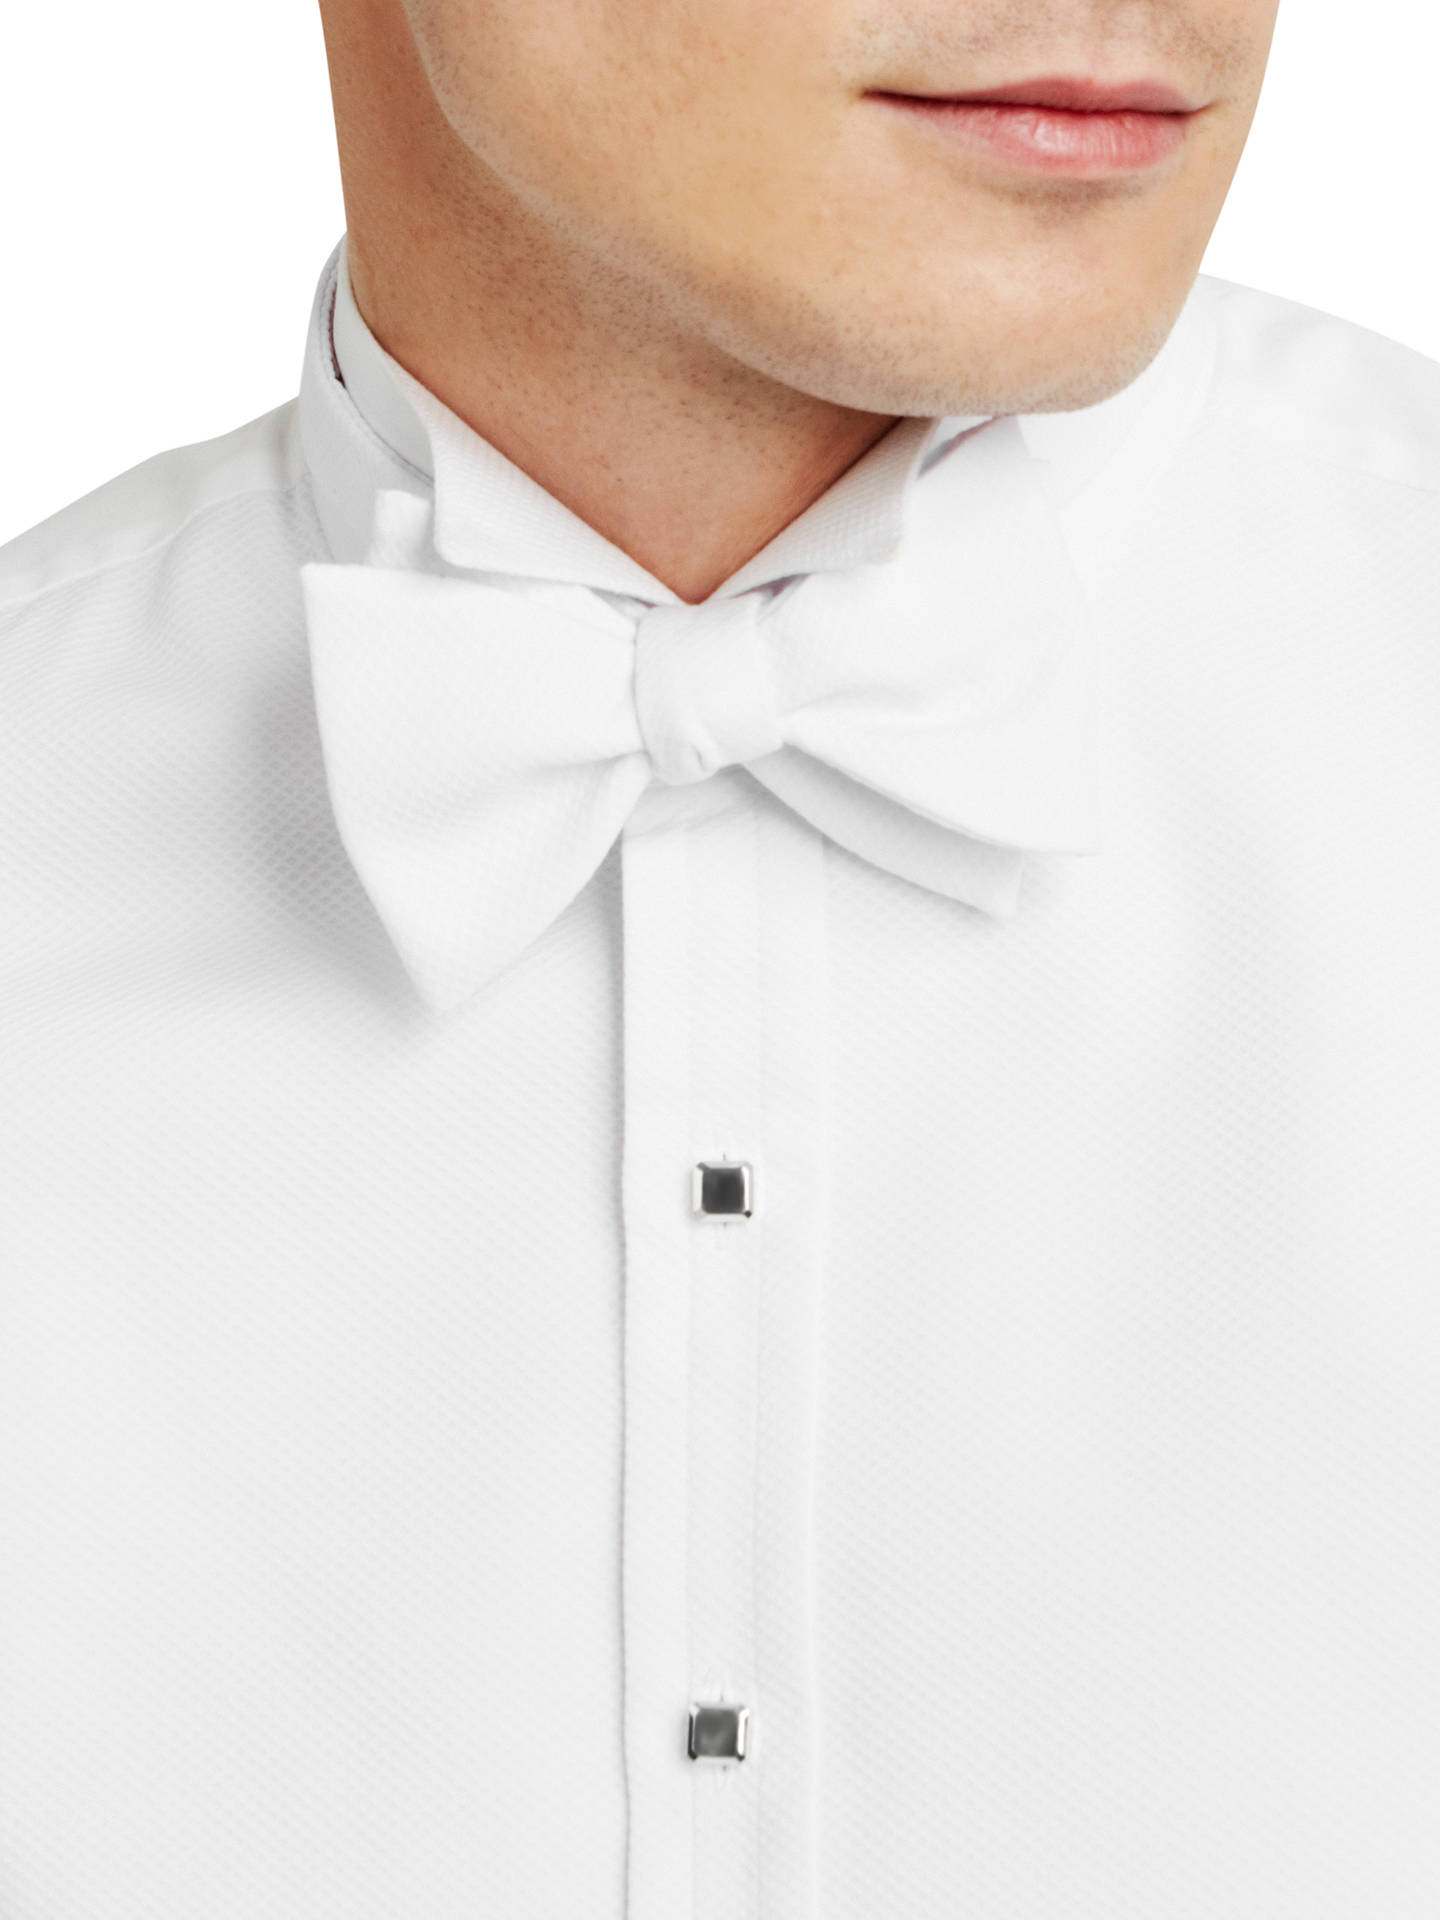 Thomas Pink Marcella Wing Collar Slim Fit Dress Shirt White At John